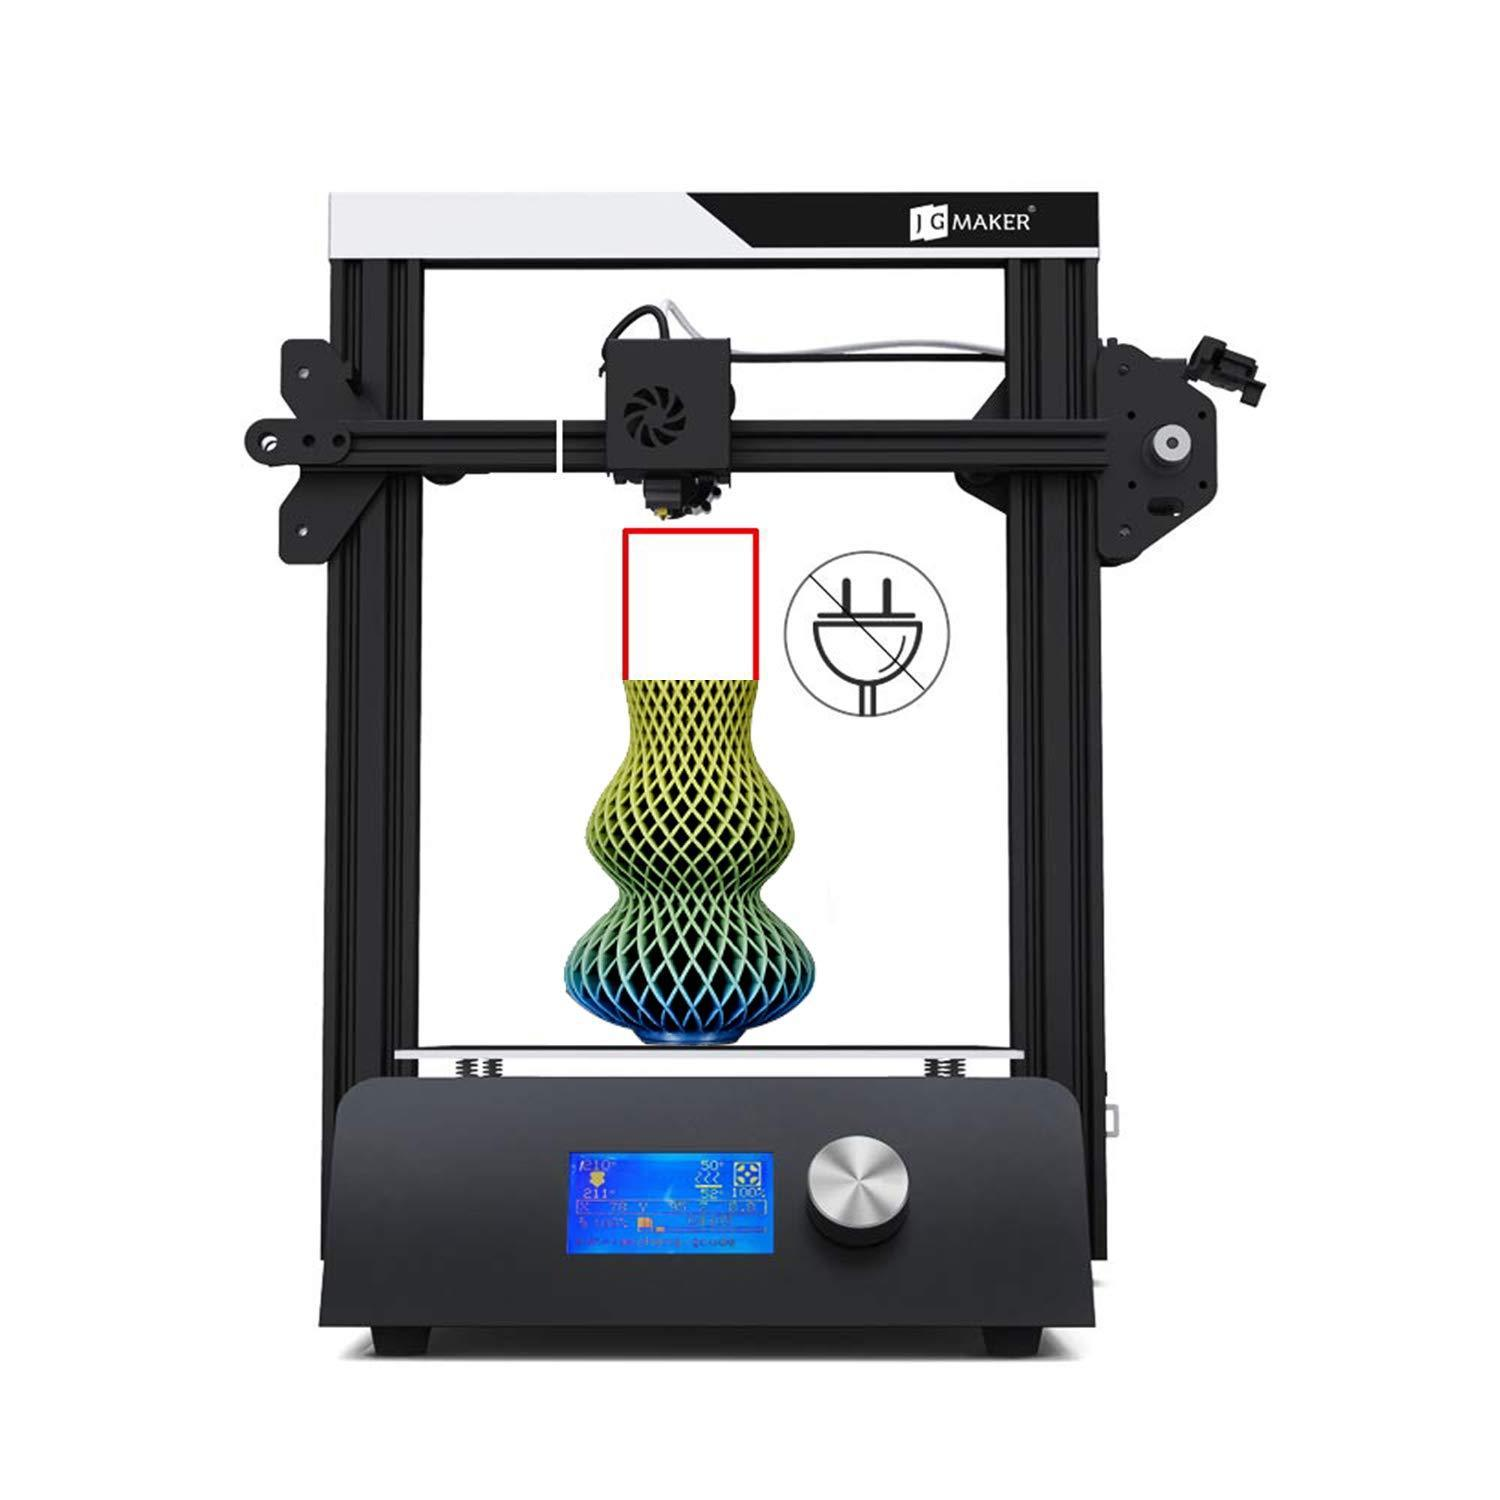 Magic 3D Printer with Automatic Memory,Aluminum DIY Kit Resume Print Work with PLA Filament Printing Size 220x220x250mm